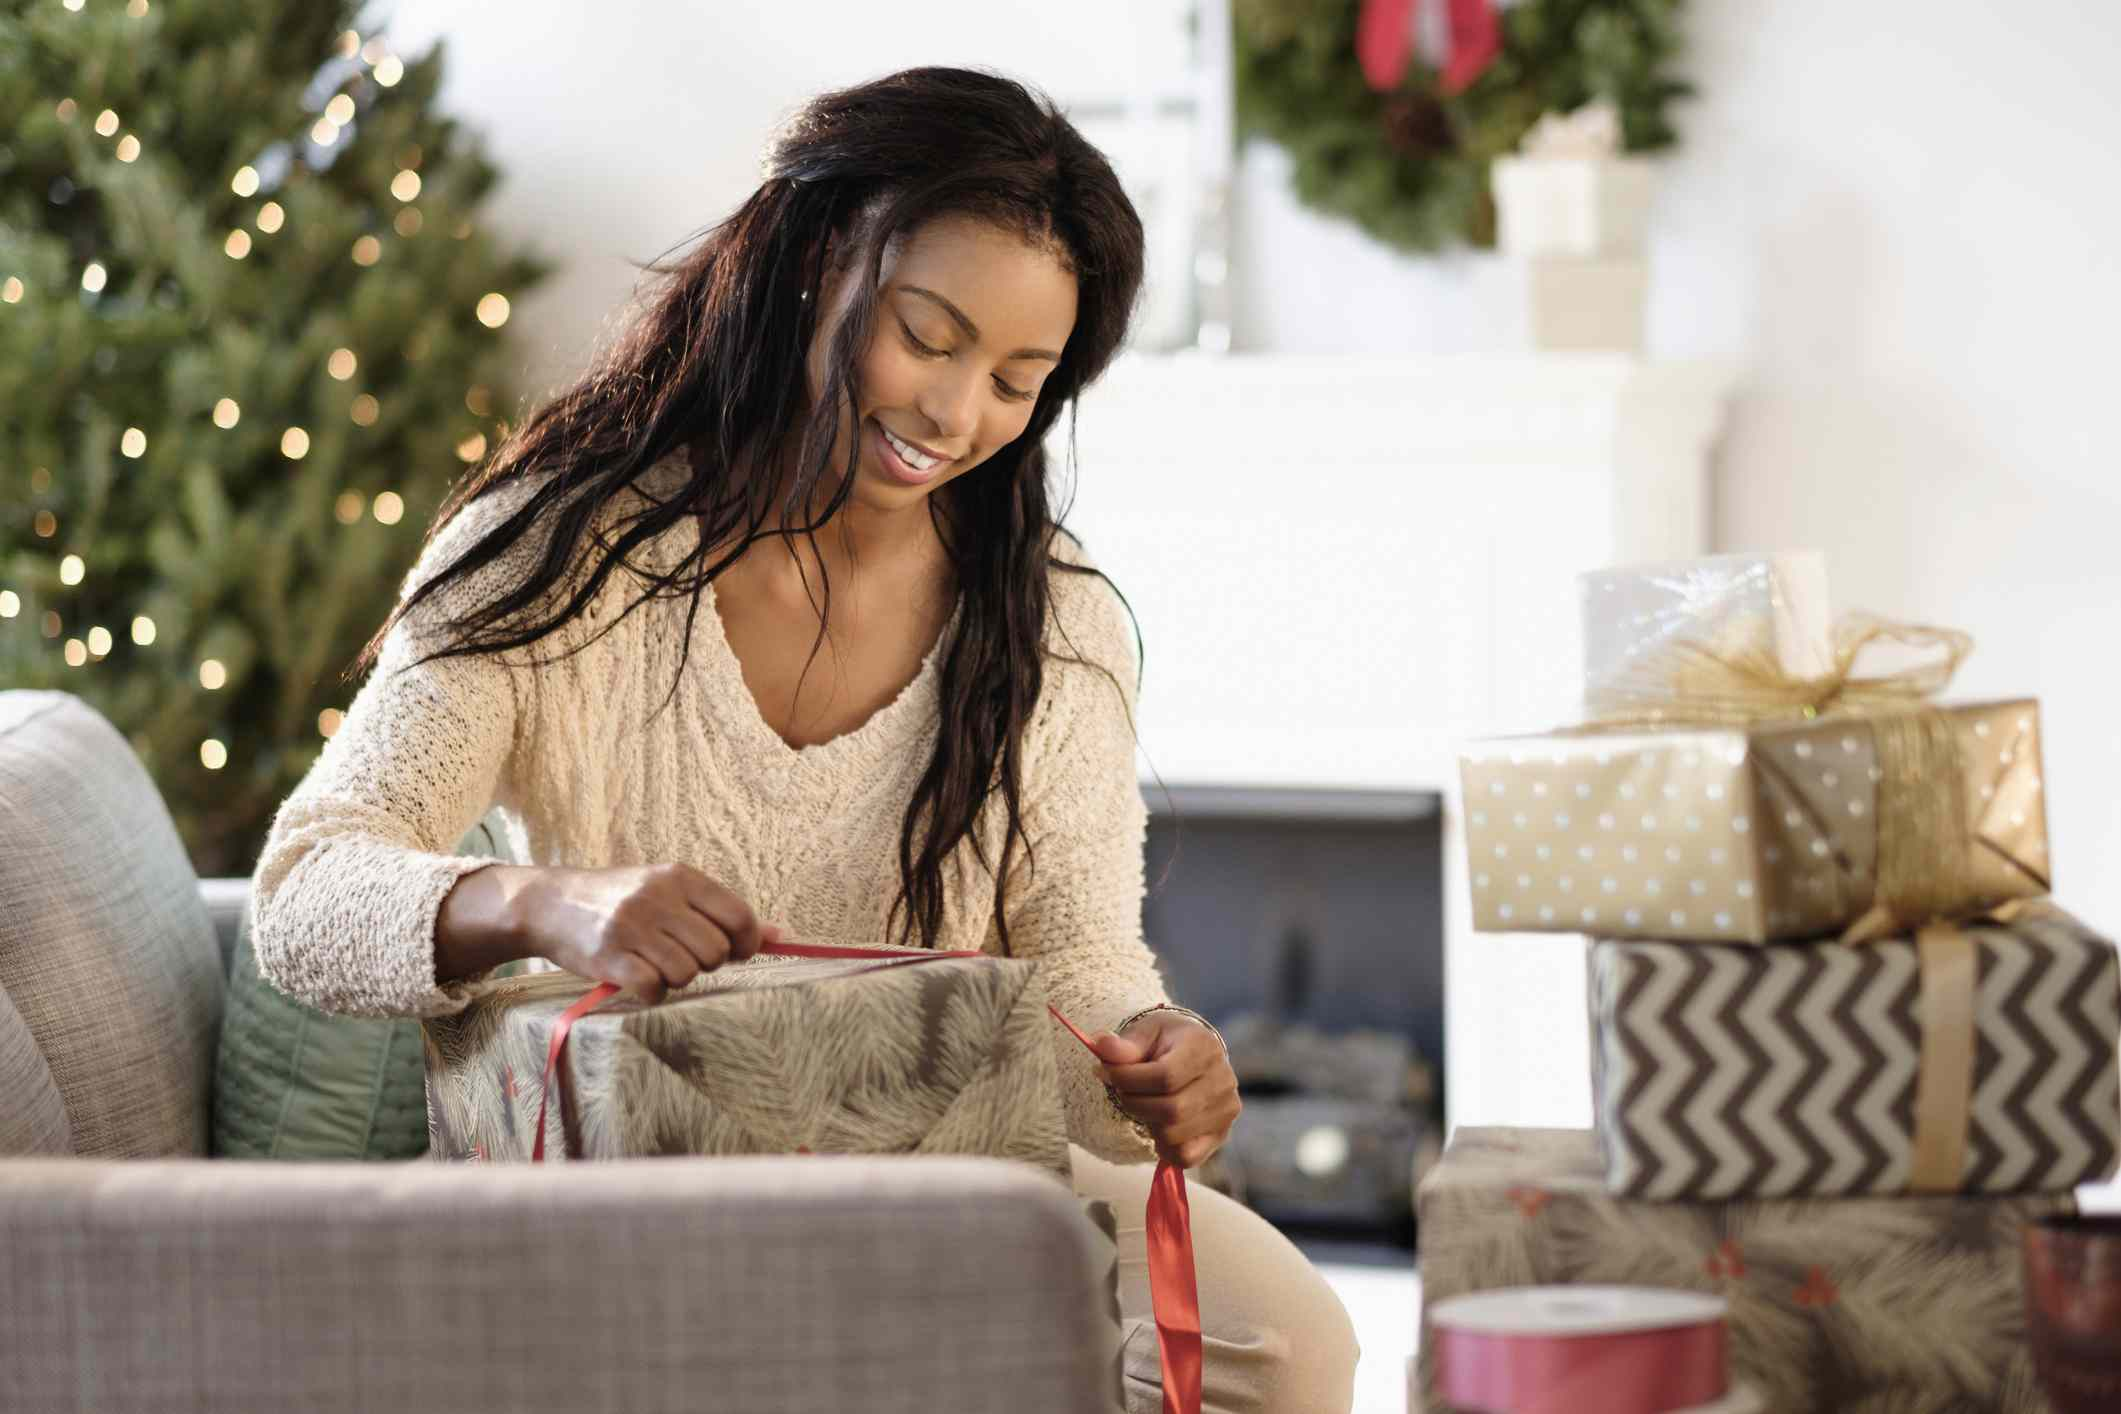 best gift exchange ideas - woman wrapping present on her couch